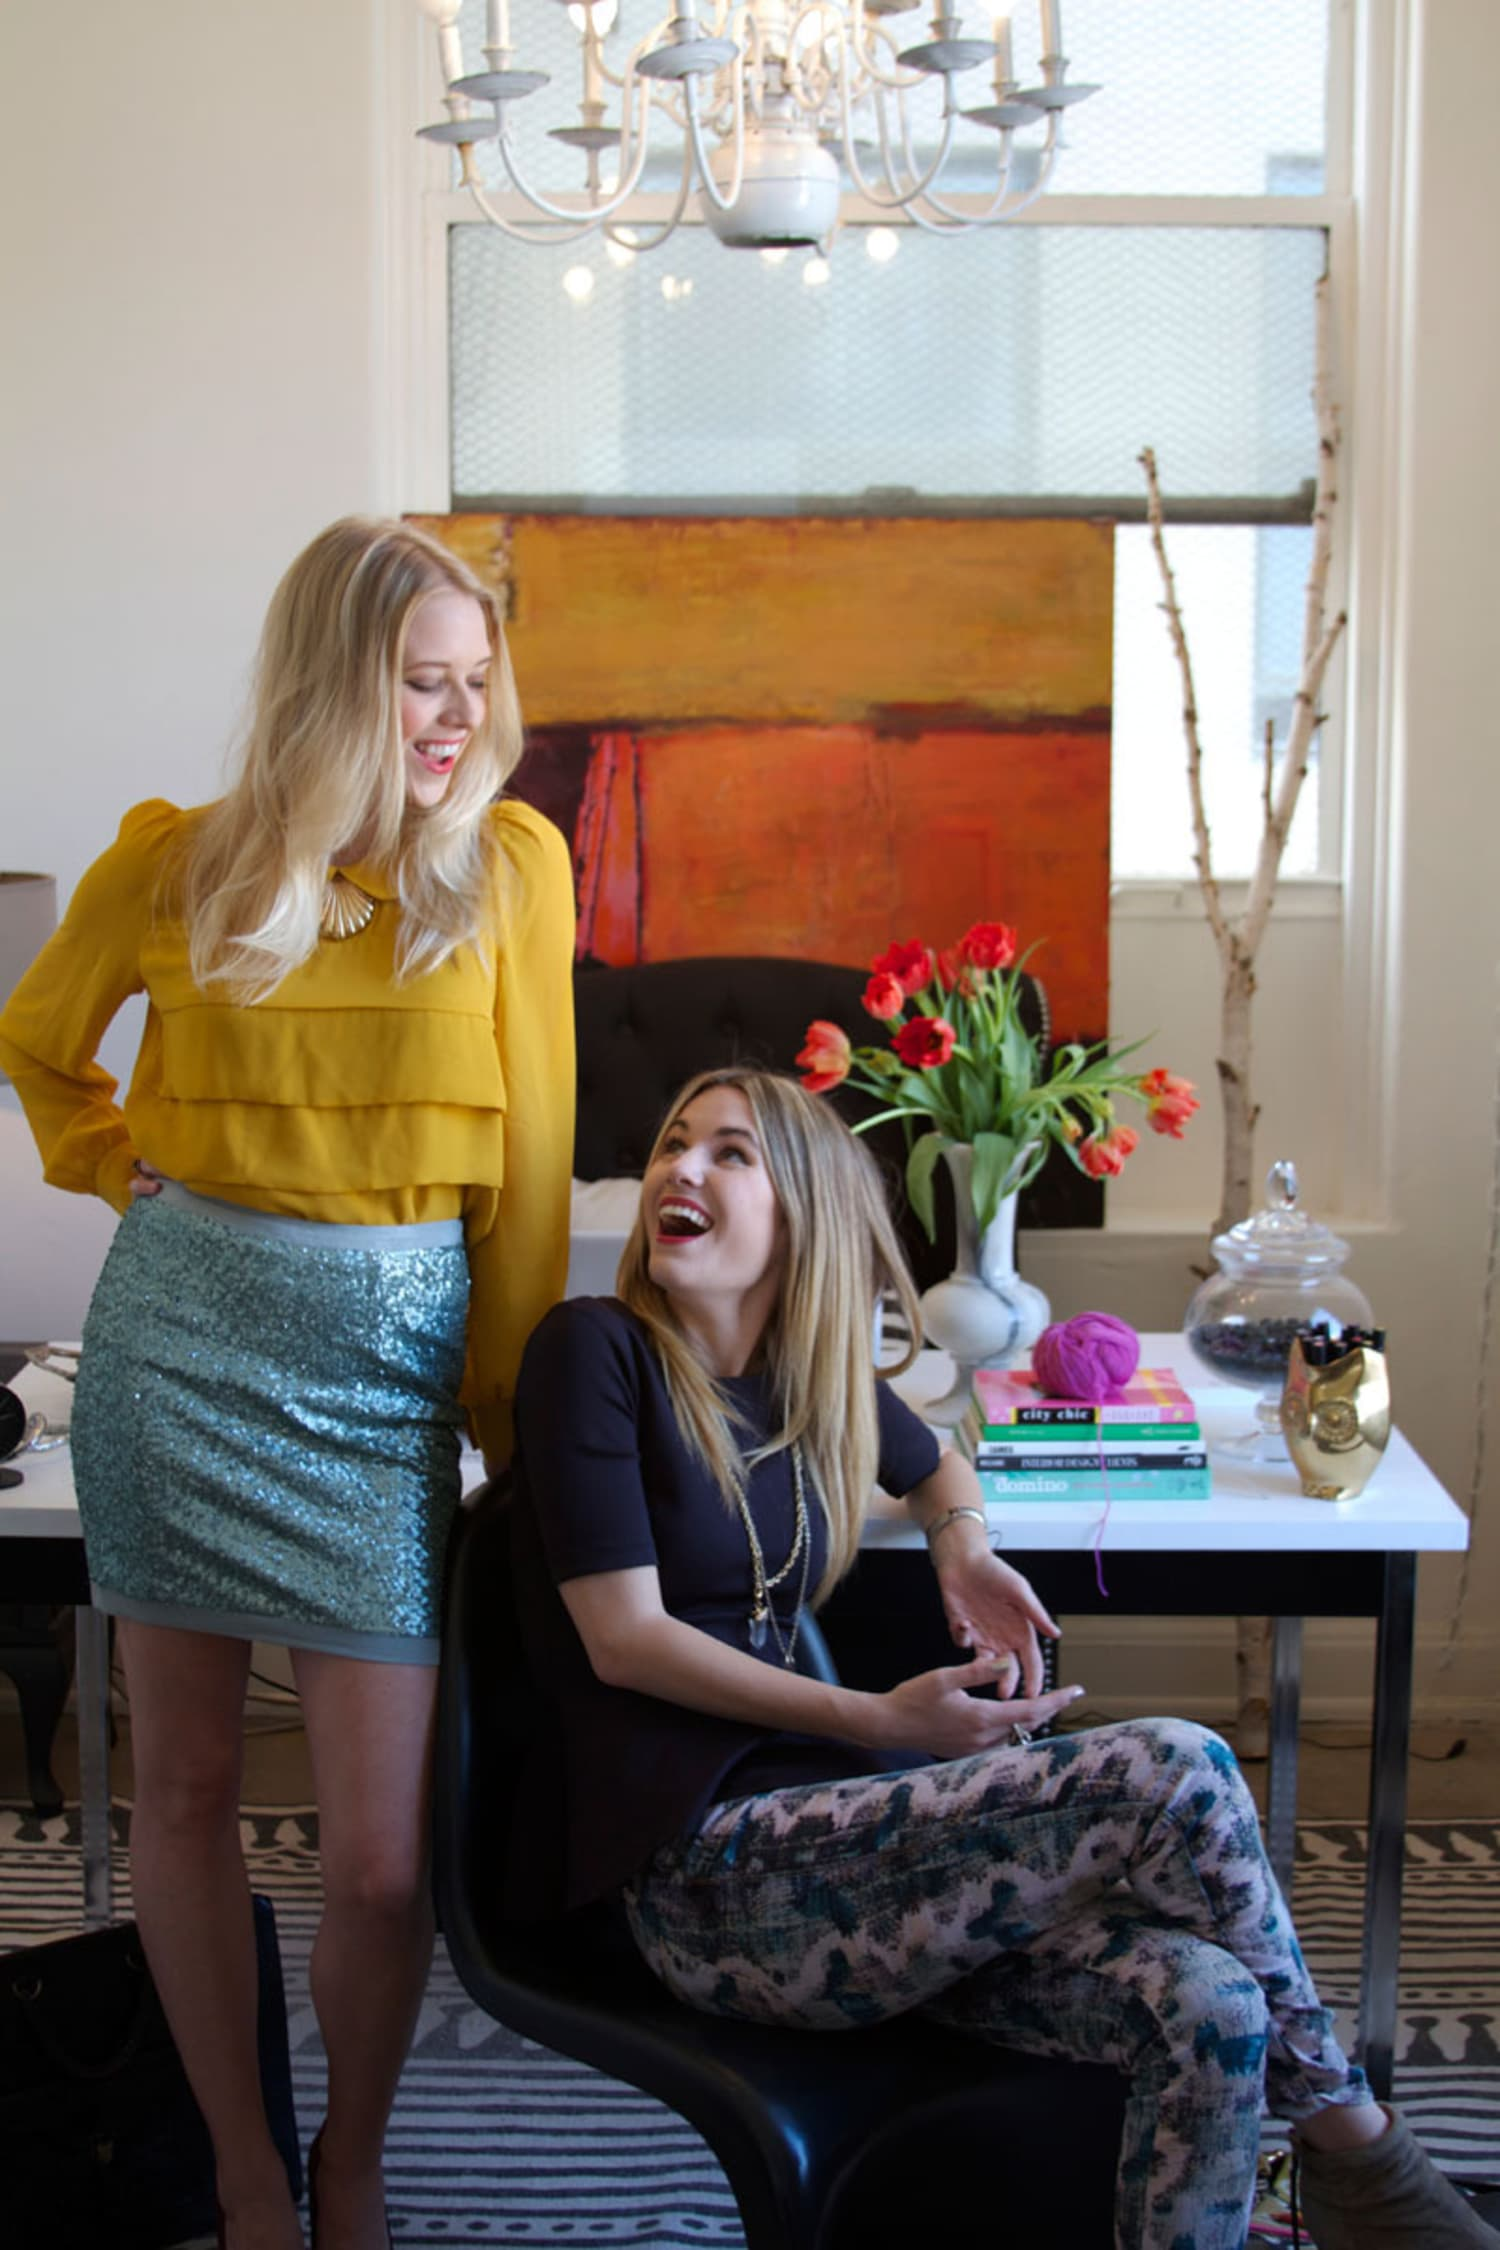 Head Over Heels with Someone New? How To Keep Your Friends in Focus, Too